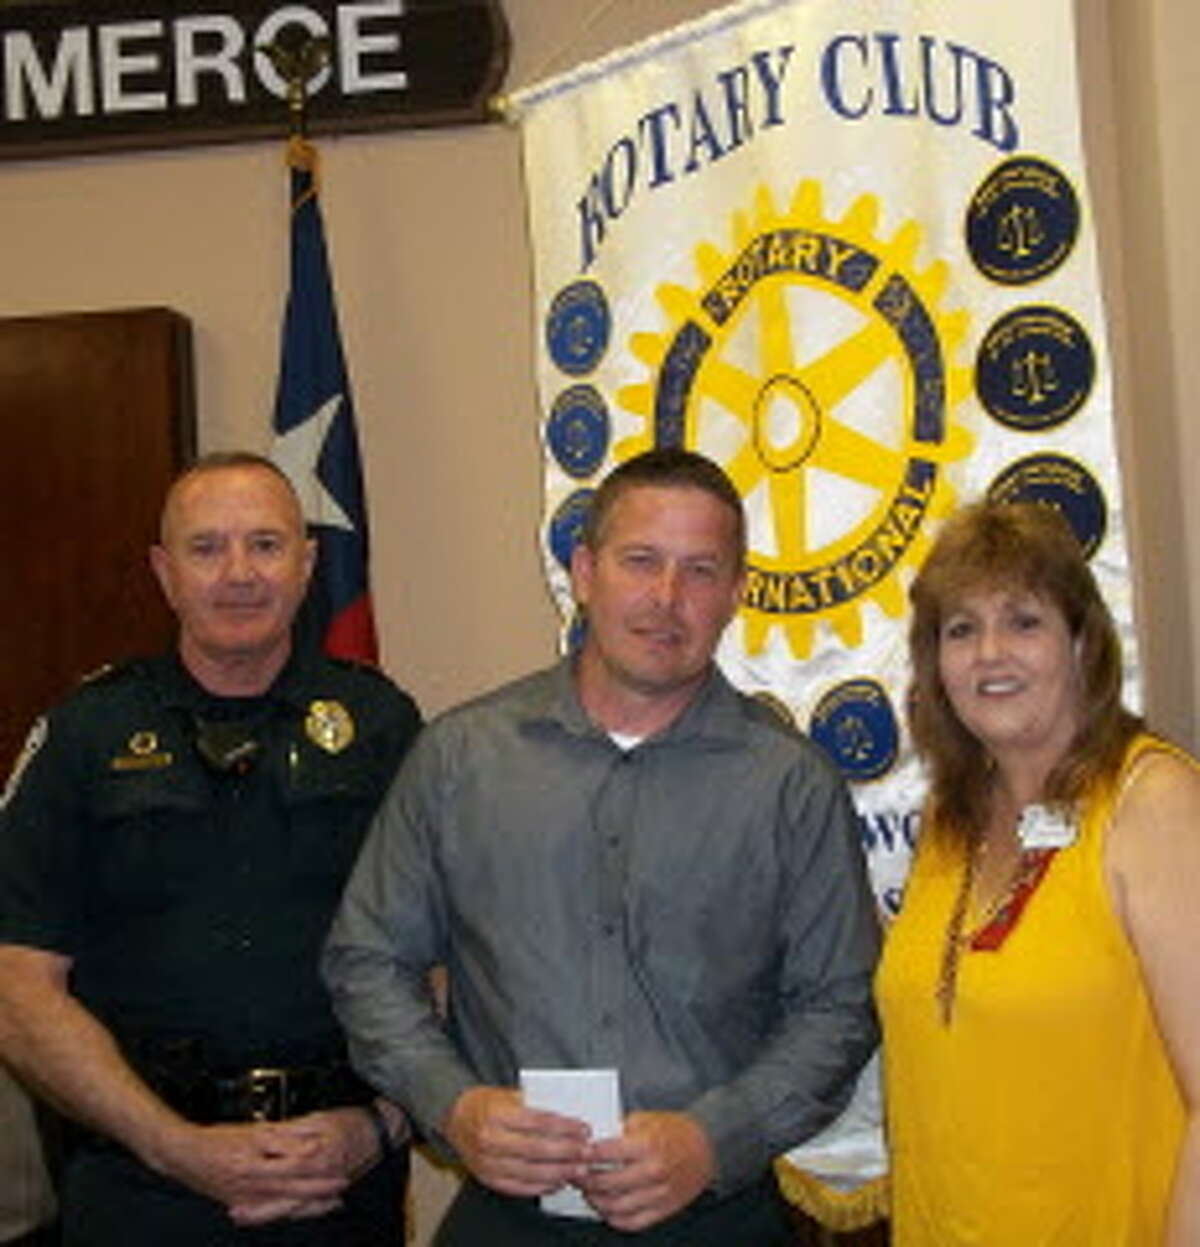 Friendswood Police Department officer John Elliott, center, was recognized recently by the Rotary Club of Friendswood for his work as a narcotics investigator. With him are Police Chief Bob Wieners and Rotary Club President Carolyn Zimmer.